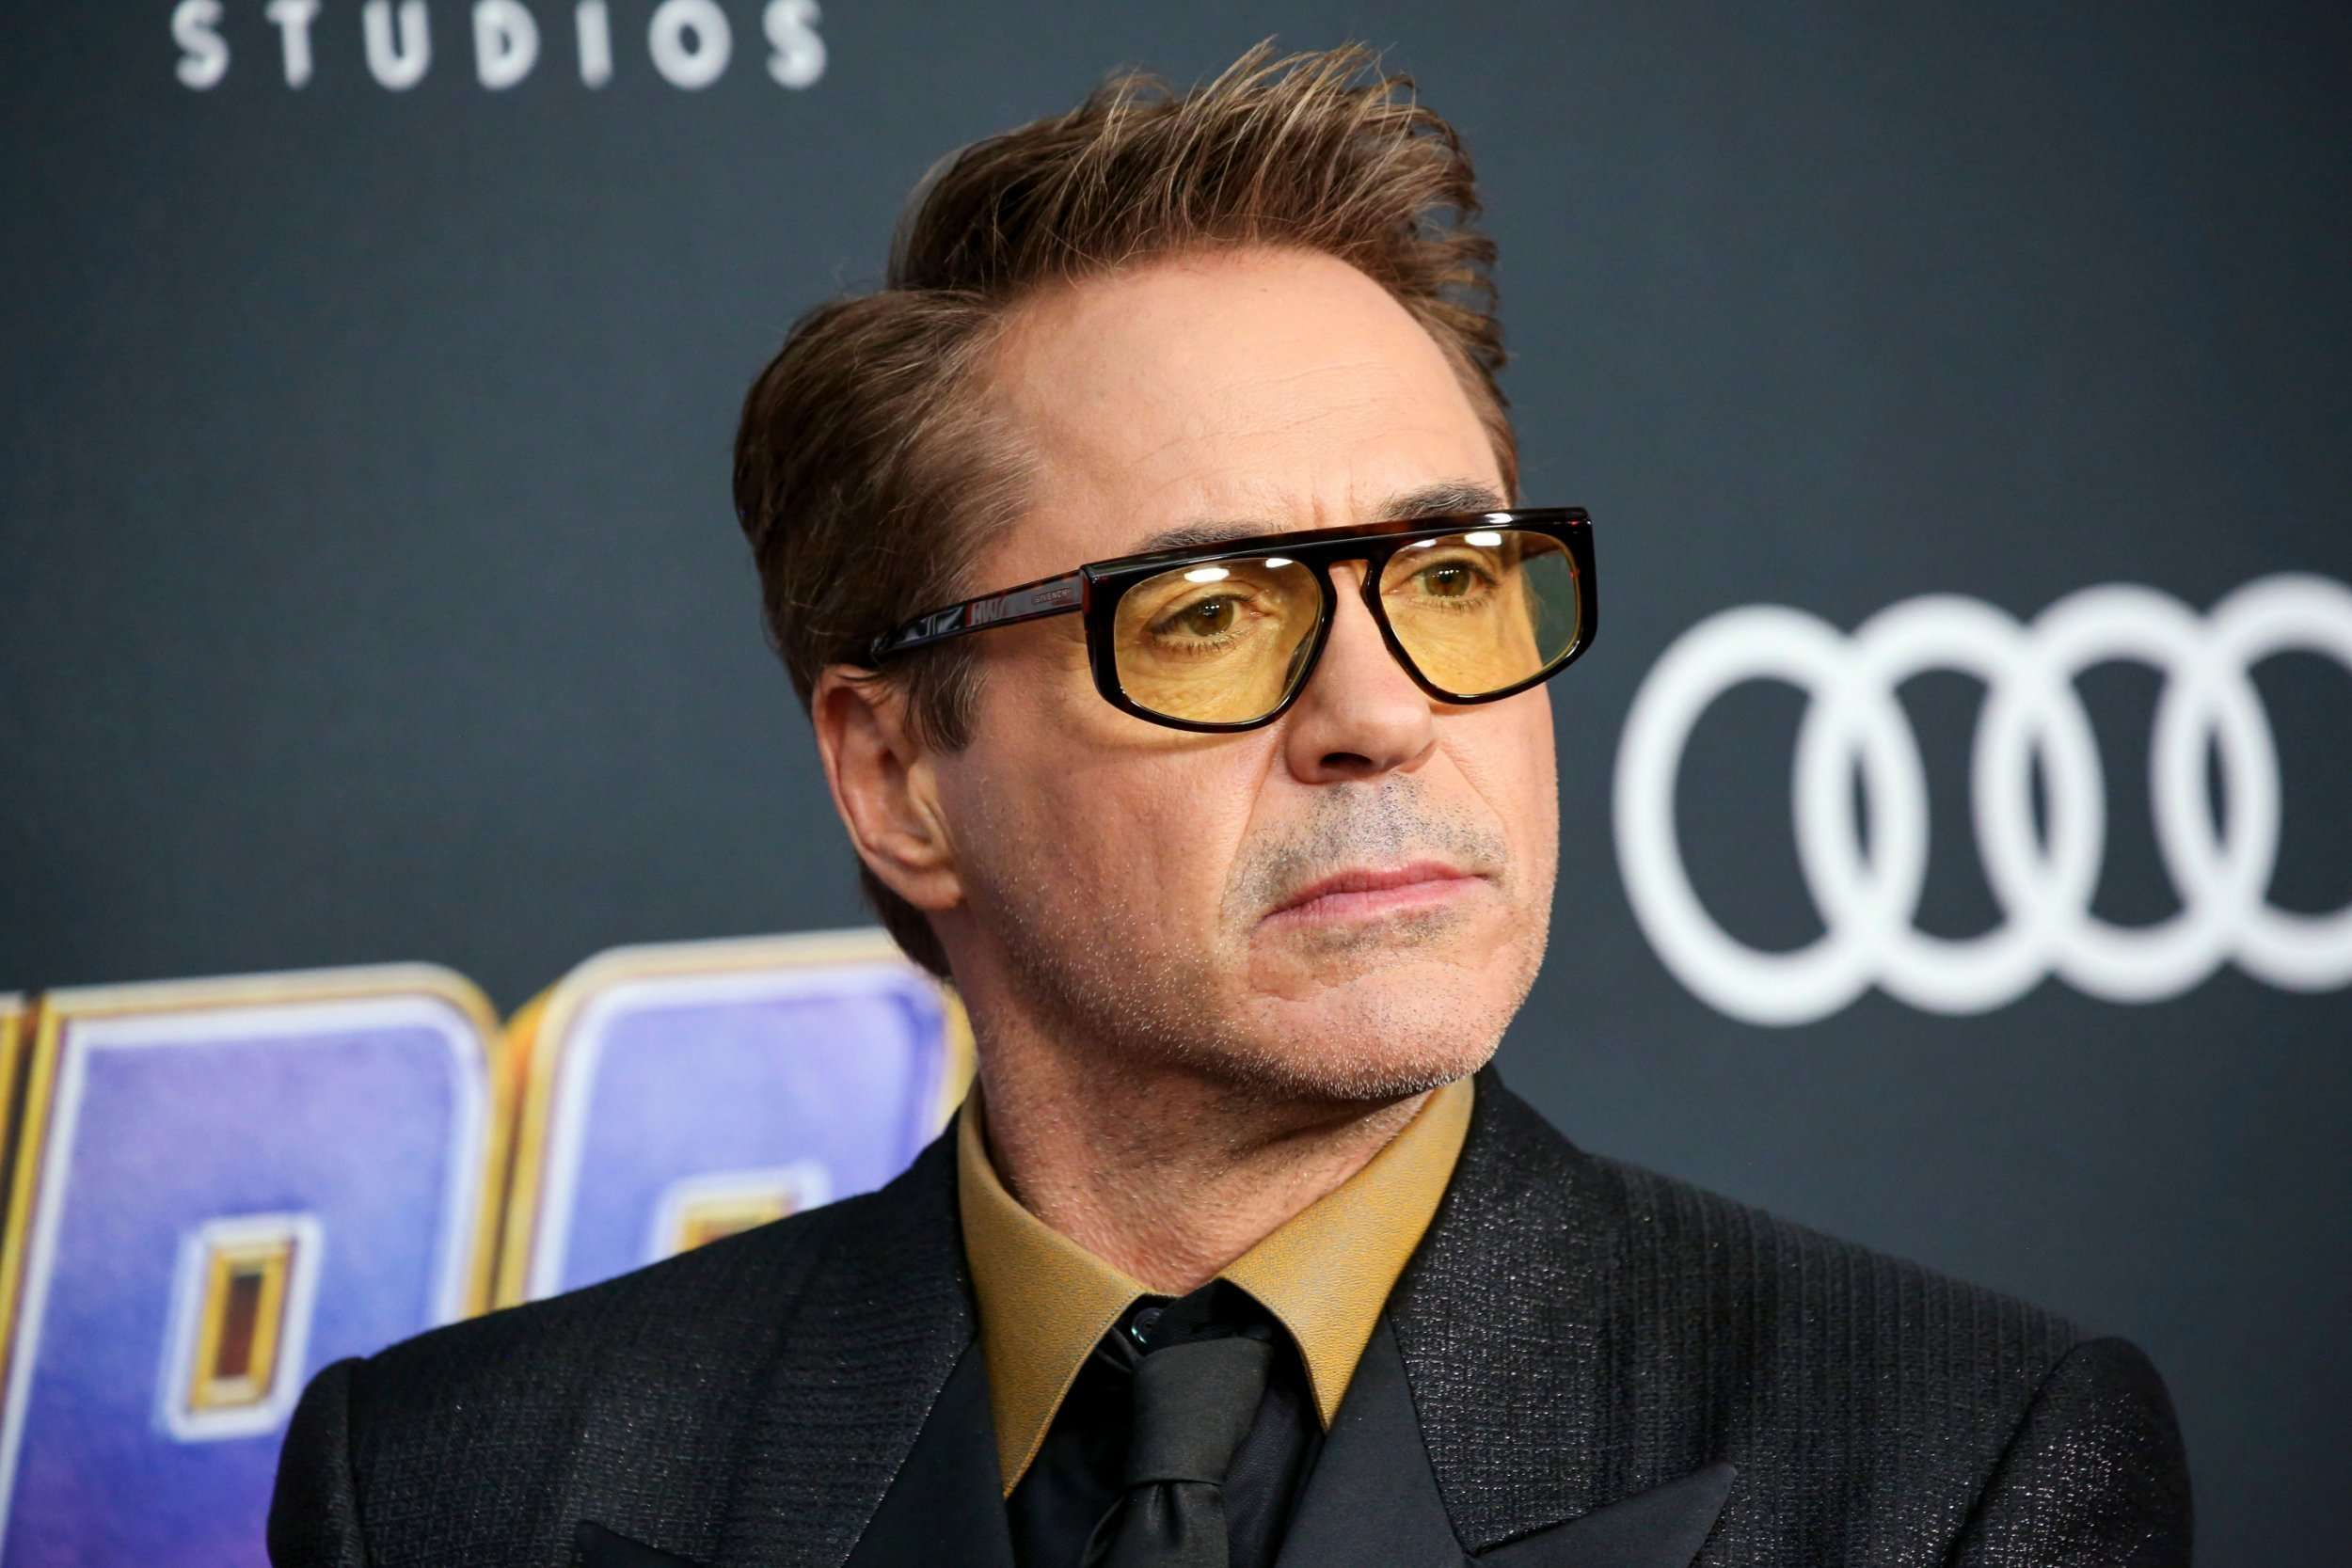 robert-downey-jr-having-a-crisis-about-the-environment-and-pledges-to-clean-it-up-with-robots.jpg